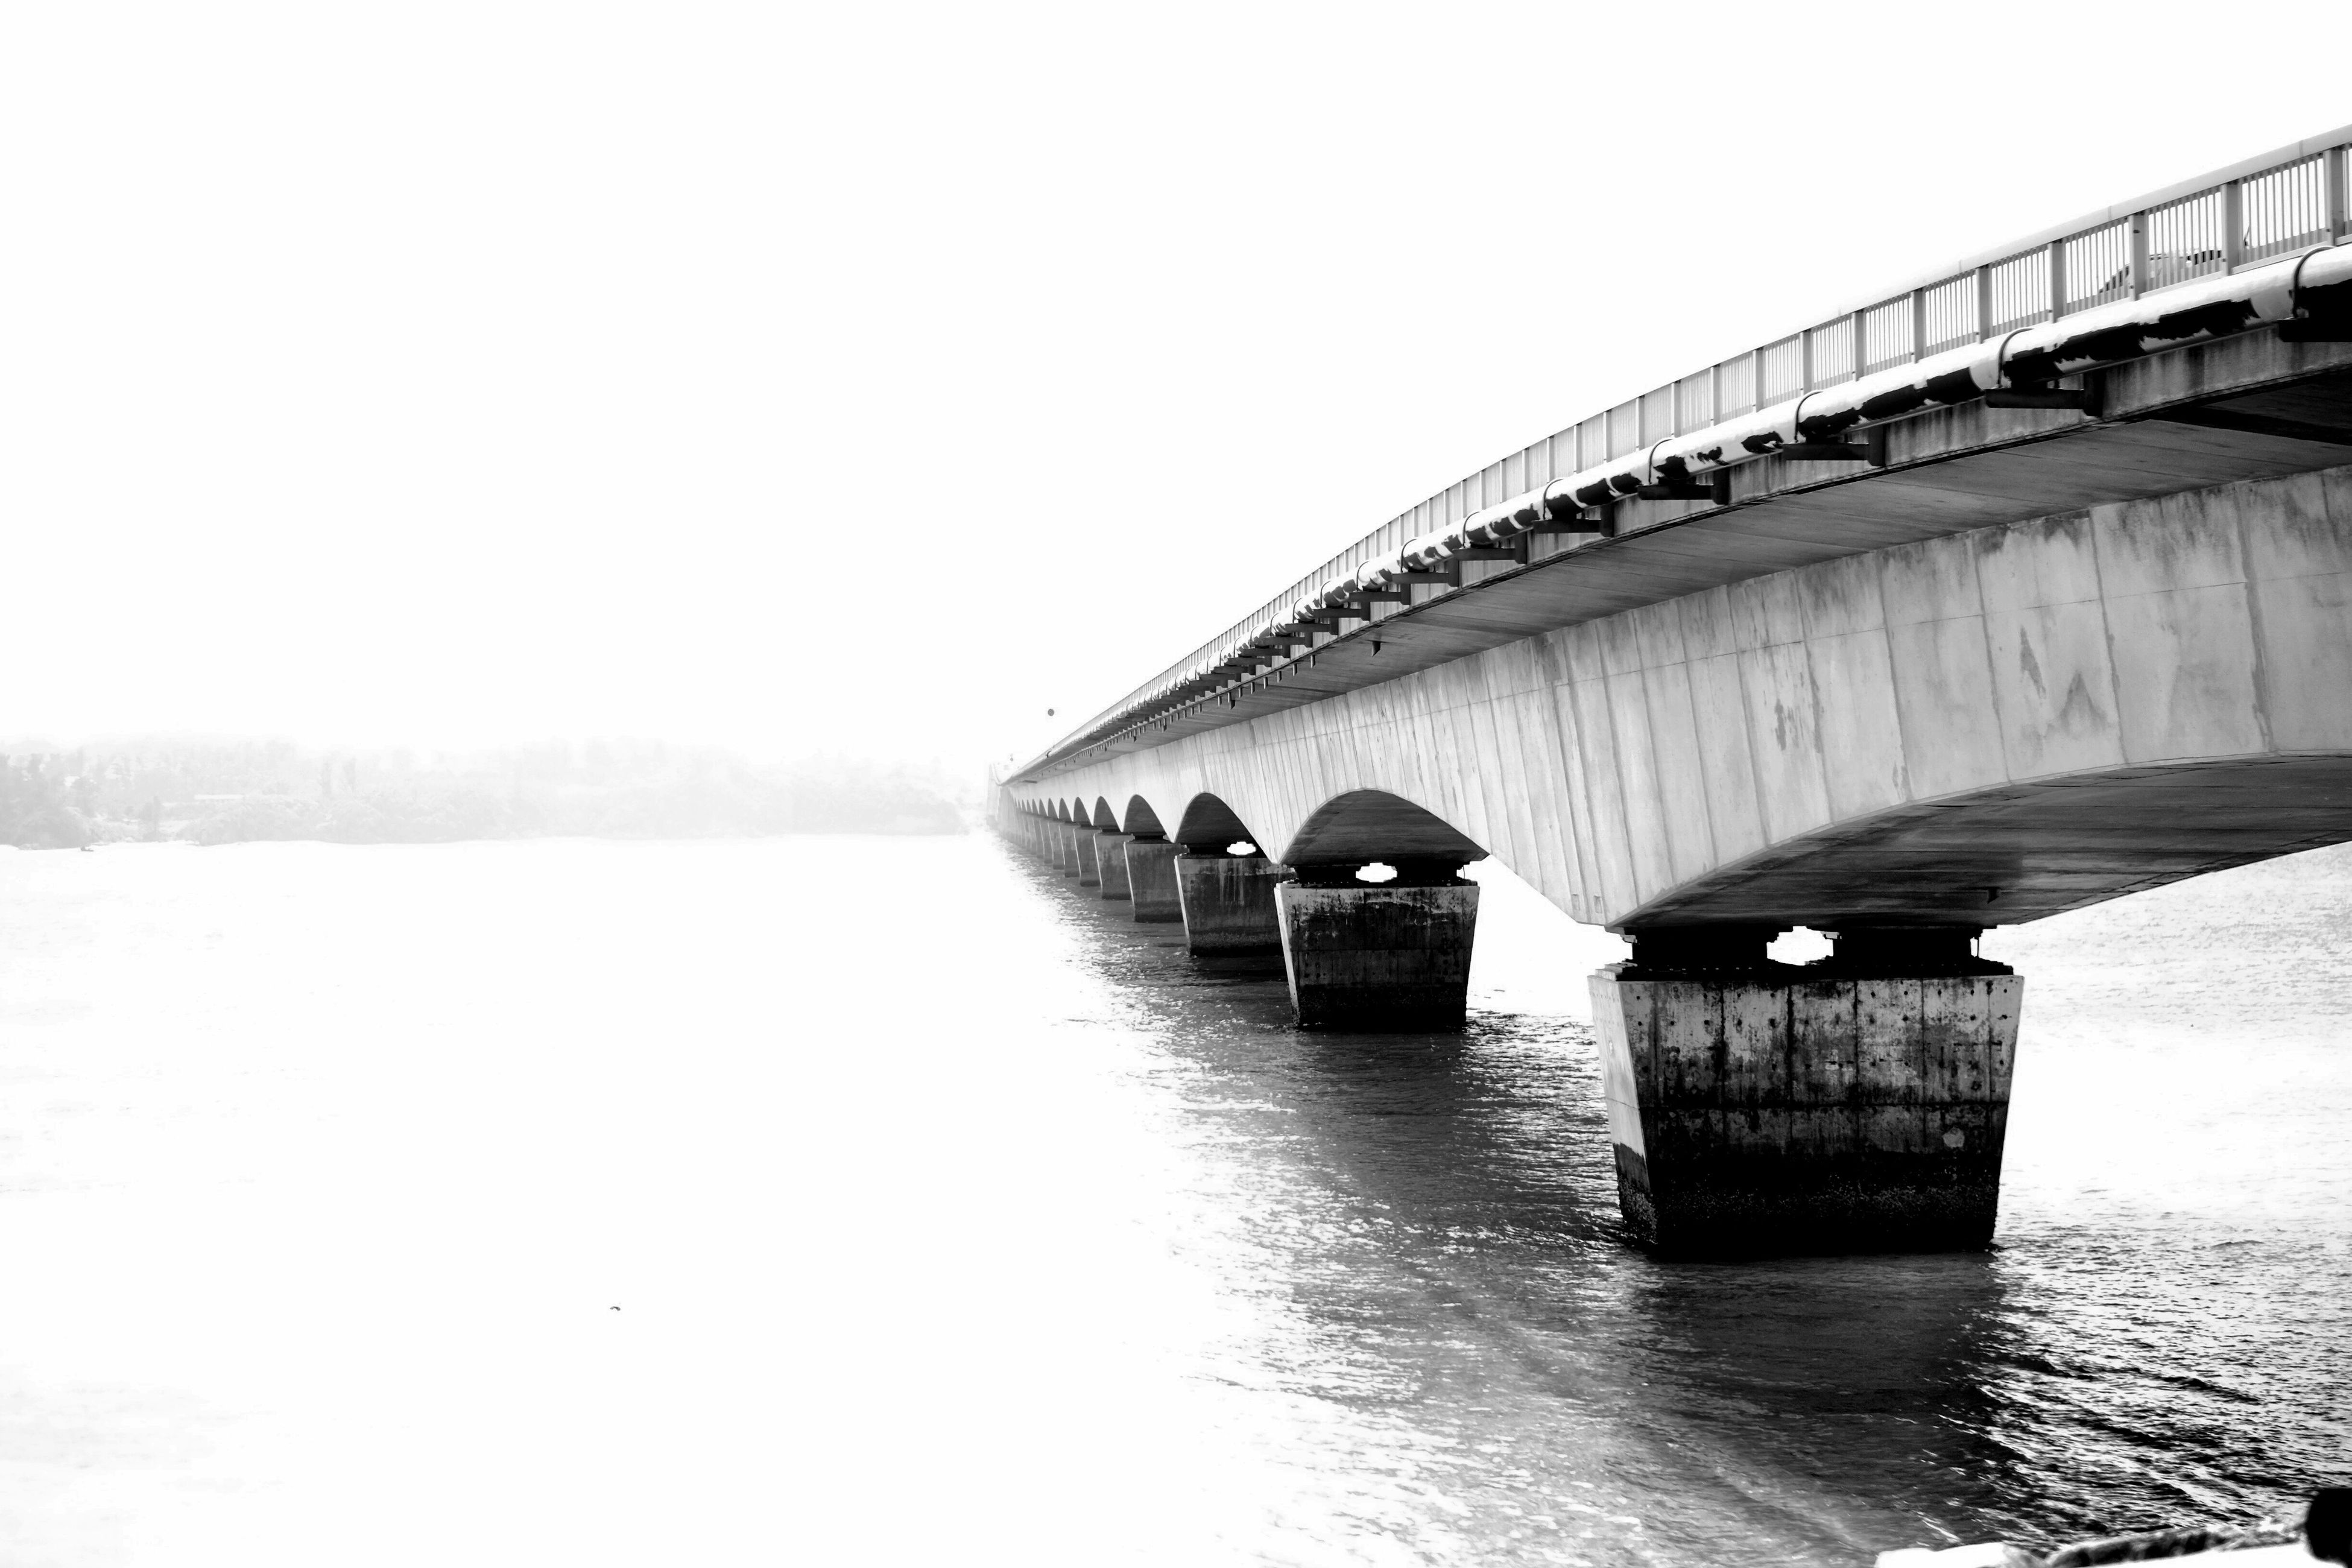 water, clear sky, waterfront, built structure, architecture, connection, river, bridge - man made structure, bridge, tranquil scene, tranquility, nature, engineering, outdoors, day, rippled, no people, scenics, beauty in nature, sky, calm, ocean, standing water, idyllic